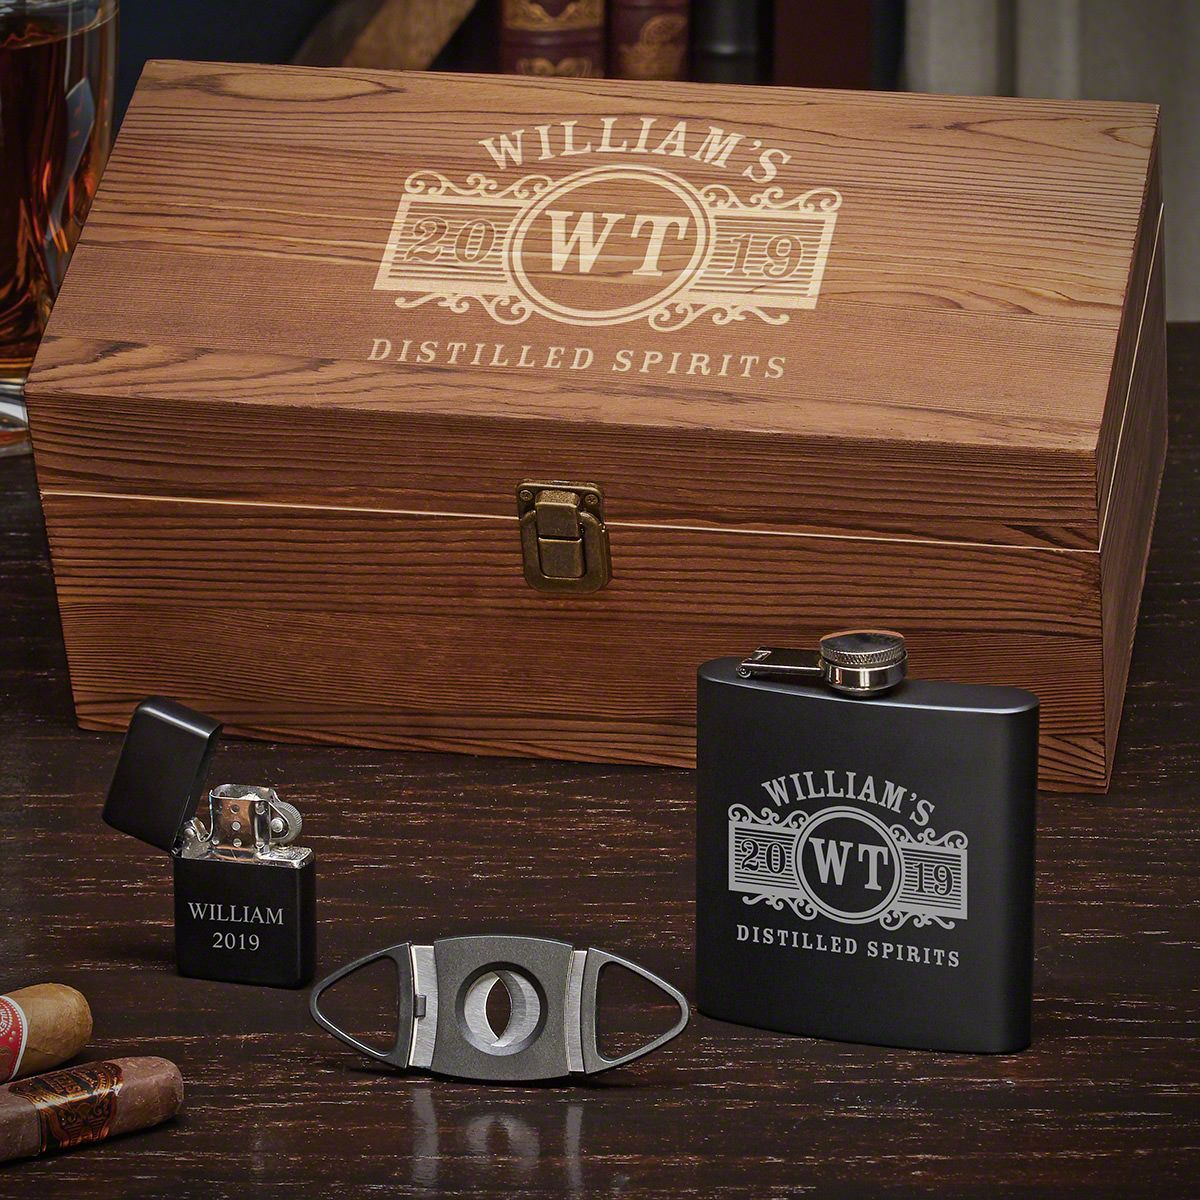 Cigar guys will love this classy gift set! #cigars #gifts #giftsforhim